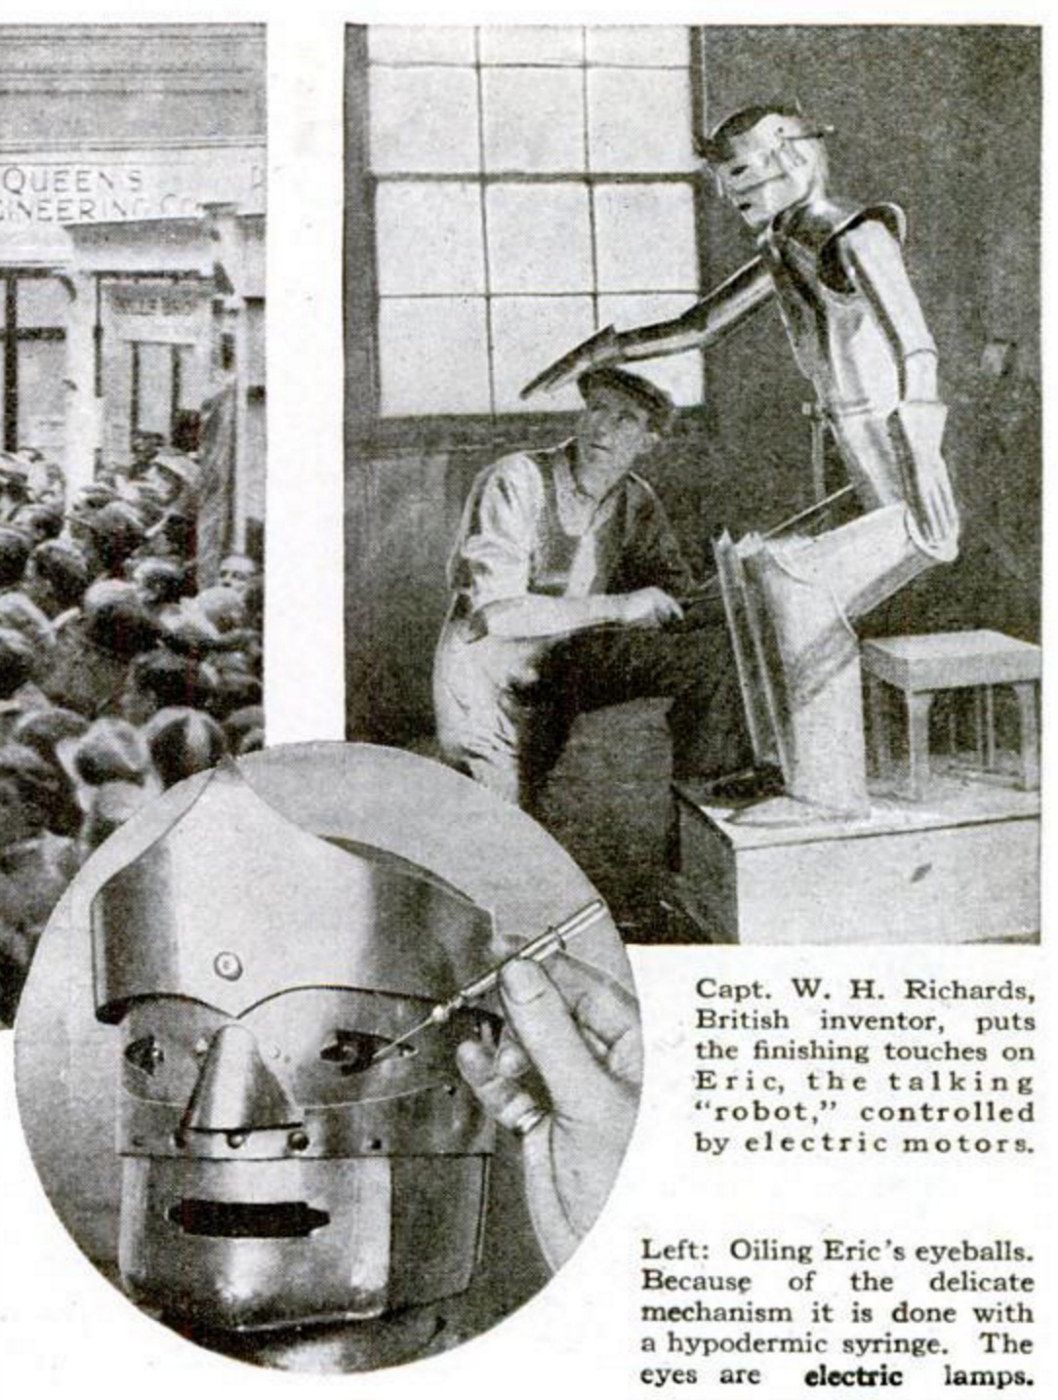 Captain Richards working on Eric, pictured in Popular Science Monthly (1928) (screenshot by the author via Google Books)